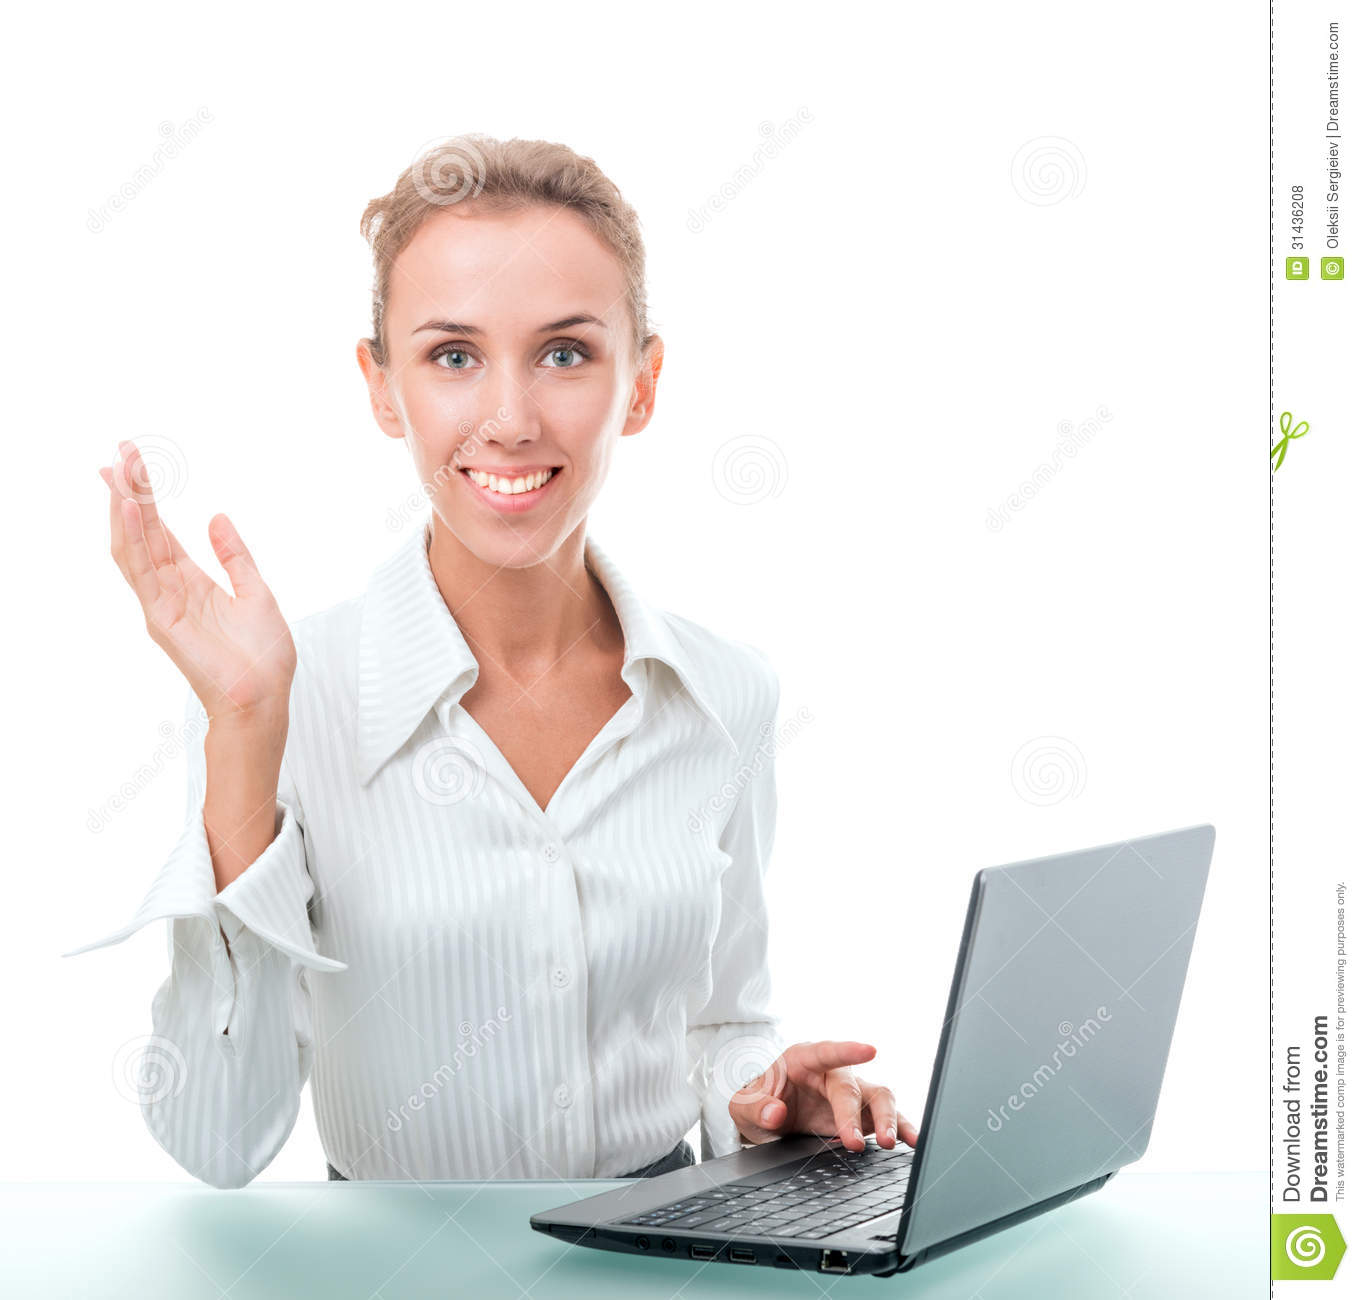 administrative assistant stock illustration image 46715576 friendly administrative assistant at the desk a laptop royalty stock photos